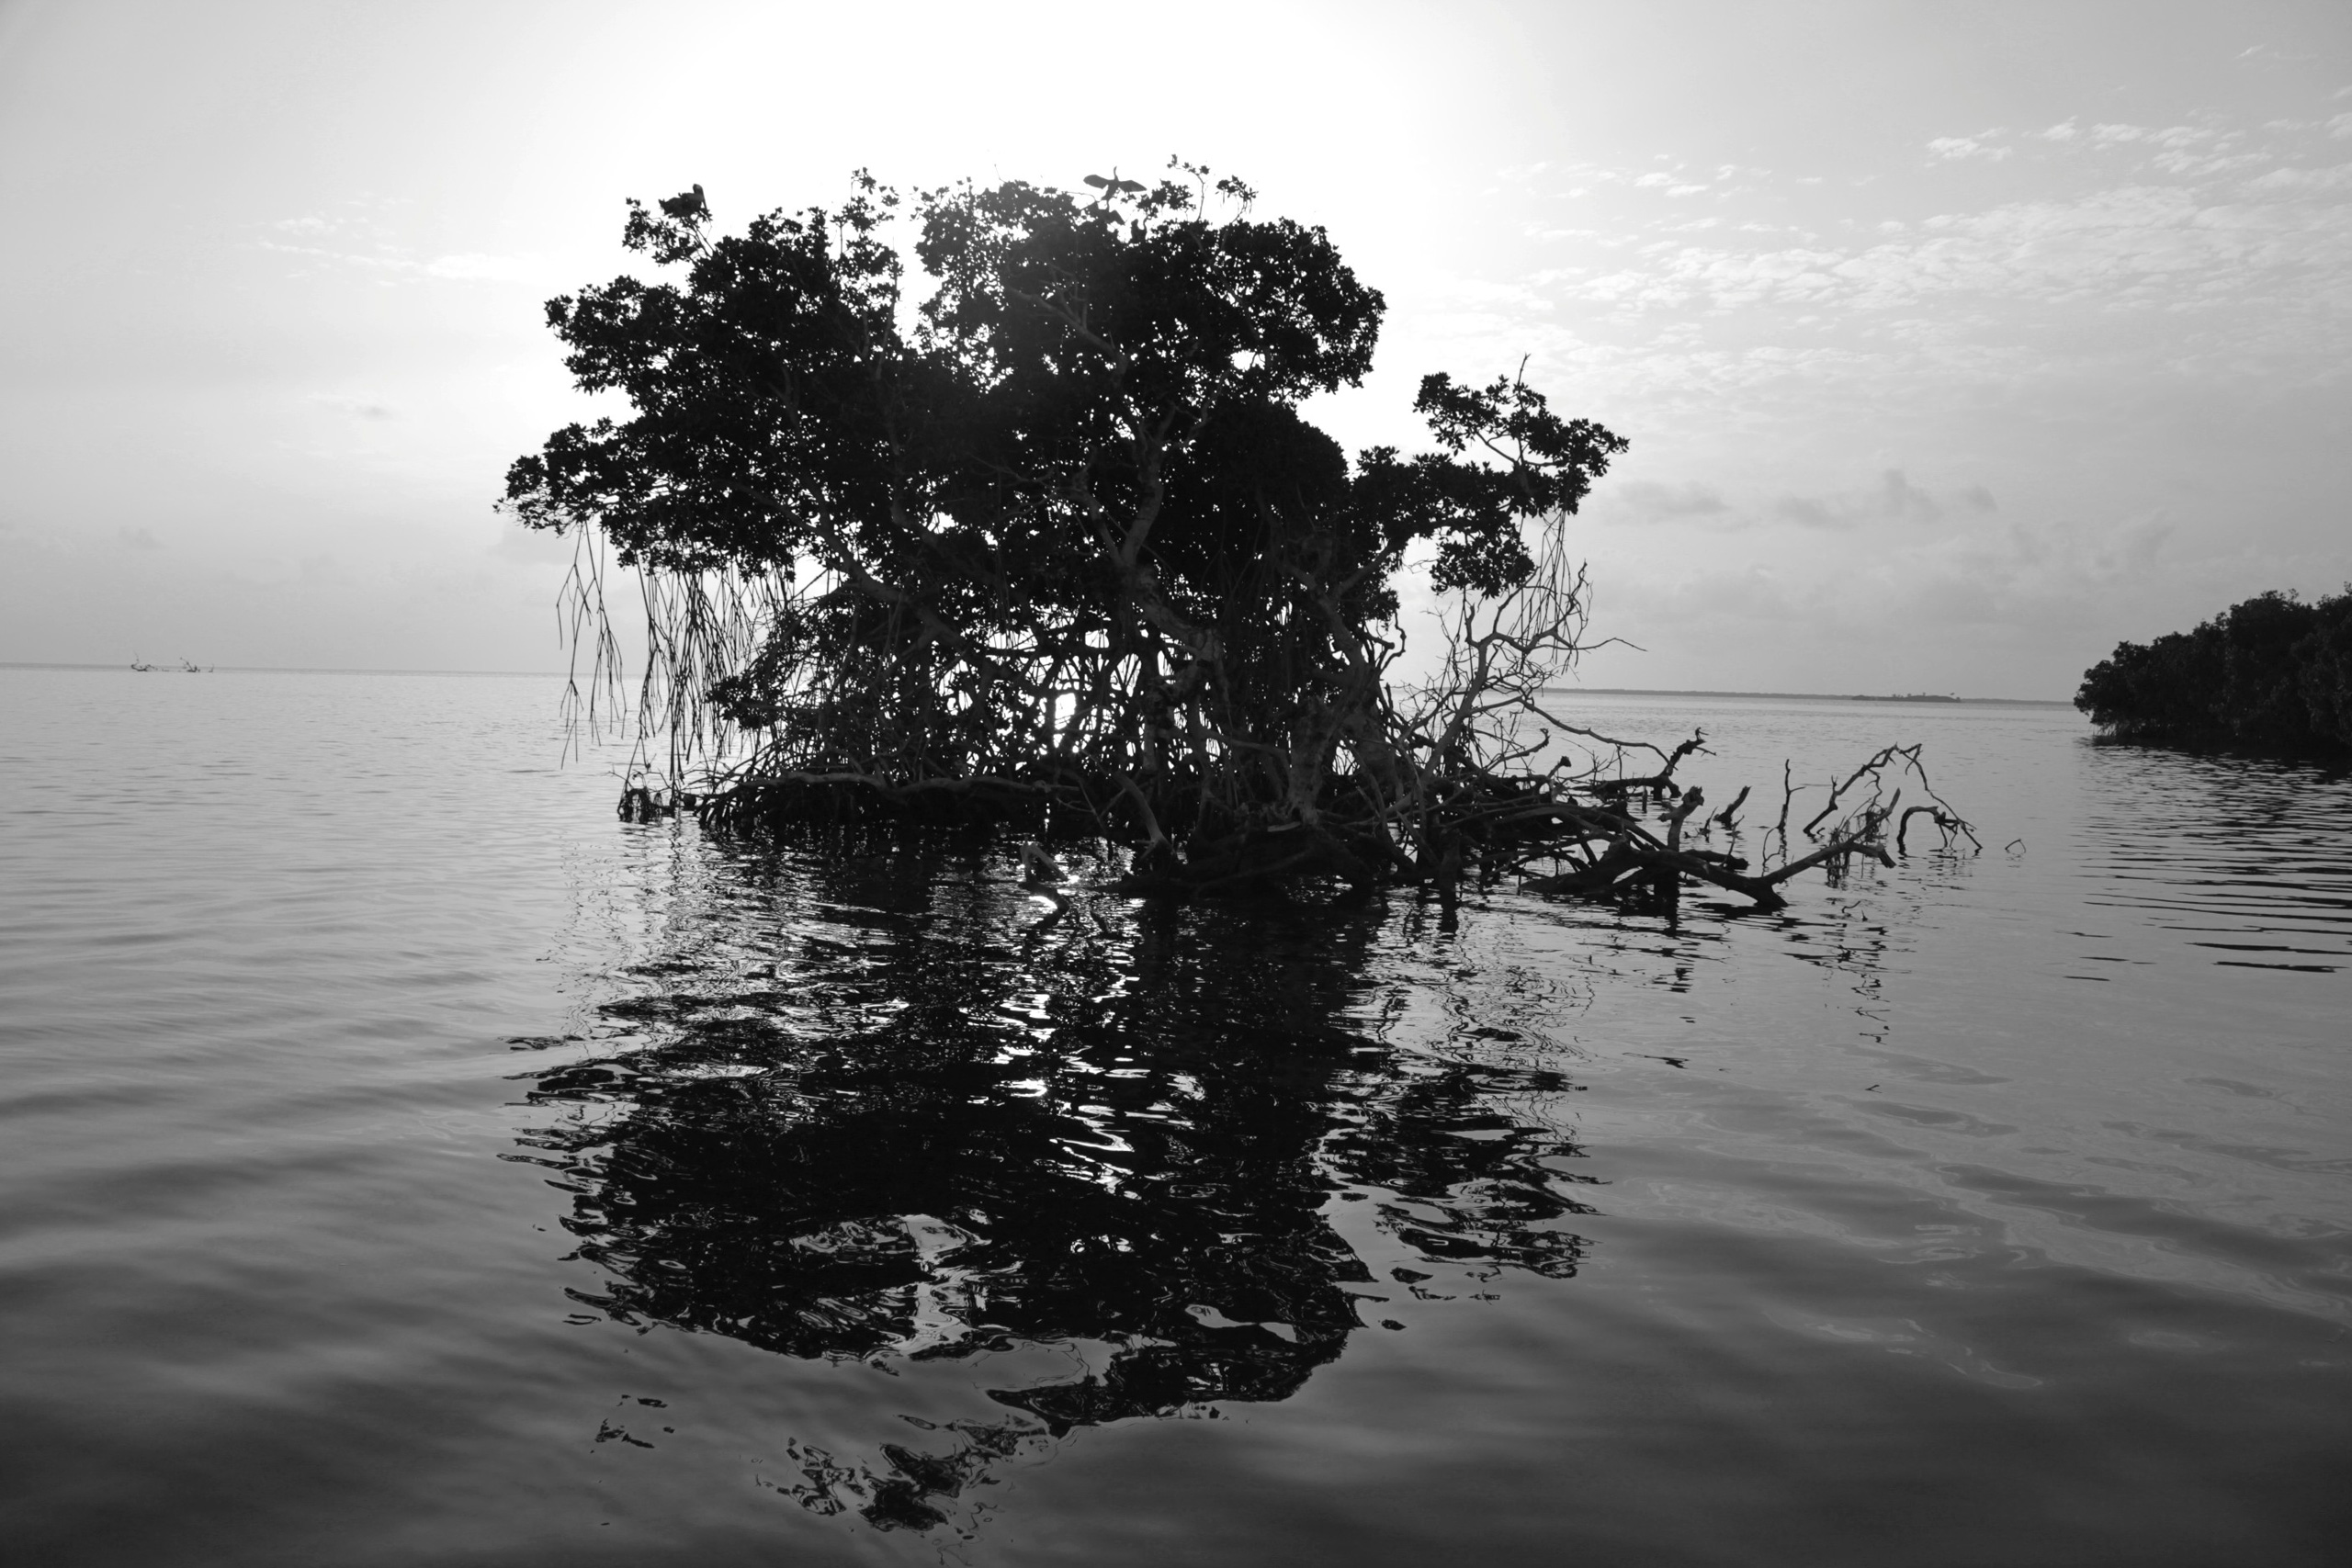 Silhouette of a mangrove in the Florida keys backcountry.